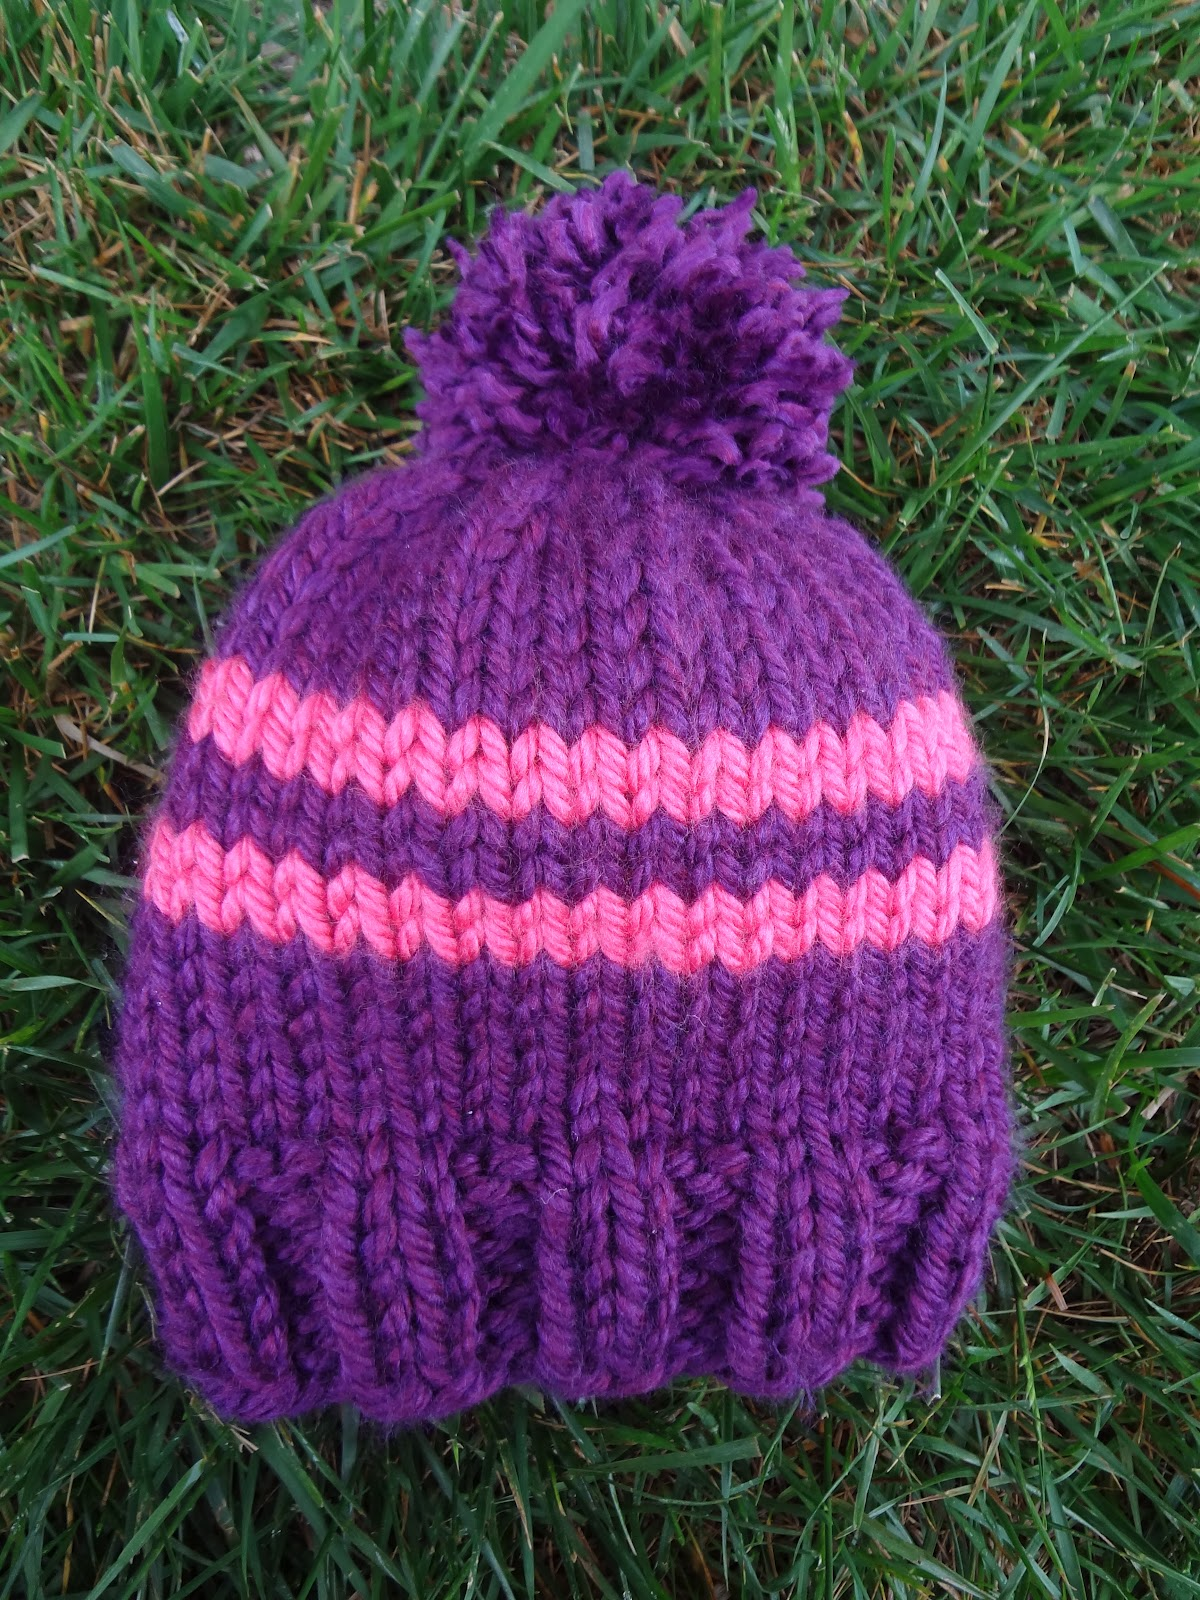 Knitting Hat Free Pattern : Fiber Flux: Free Knitting Pattern! Preschooler Rugby Hat